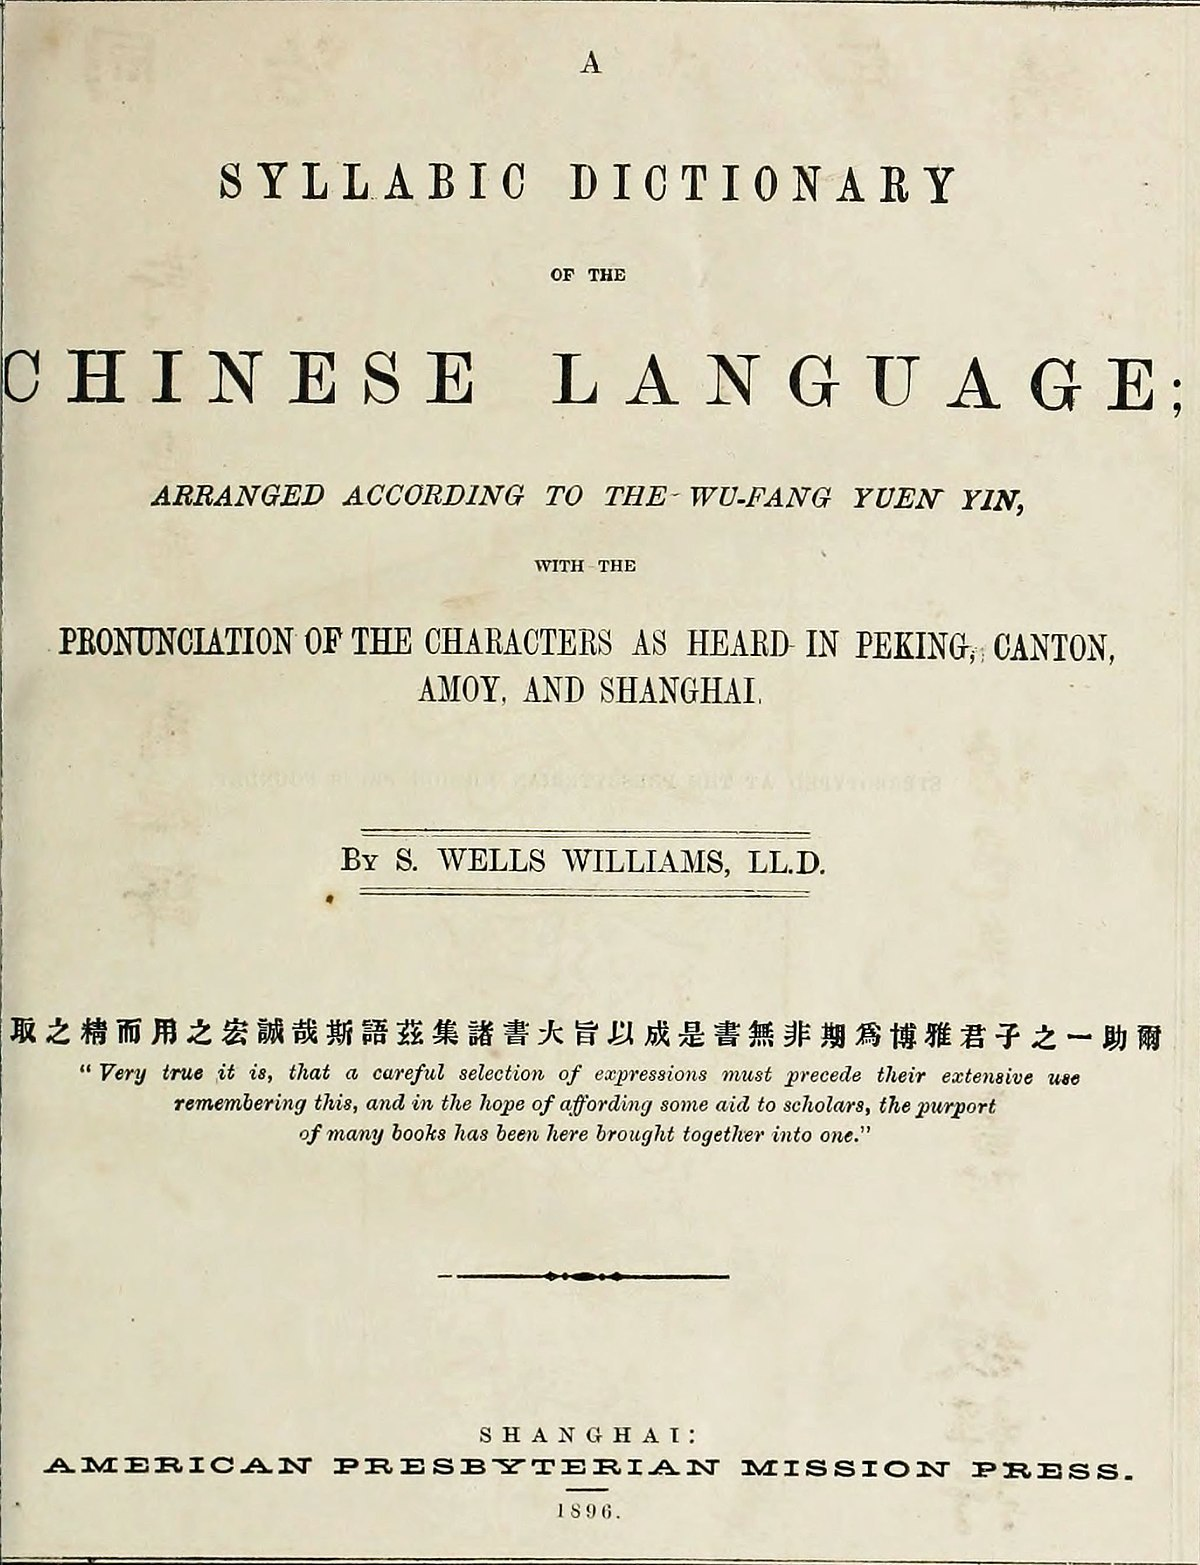 A Syllabic Dictionary of the Chinese Language - Wikipedia